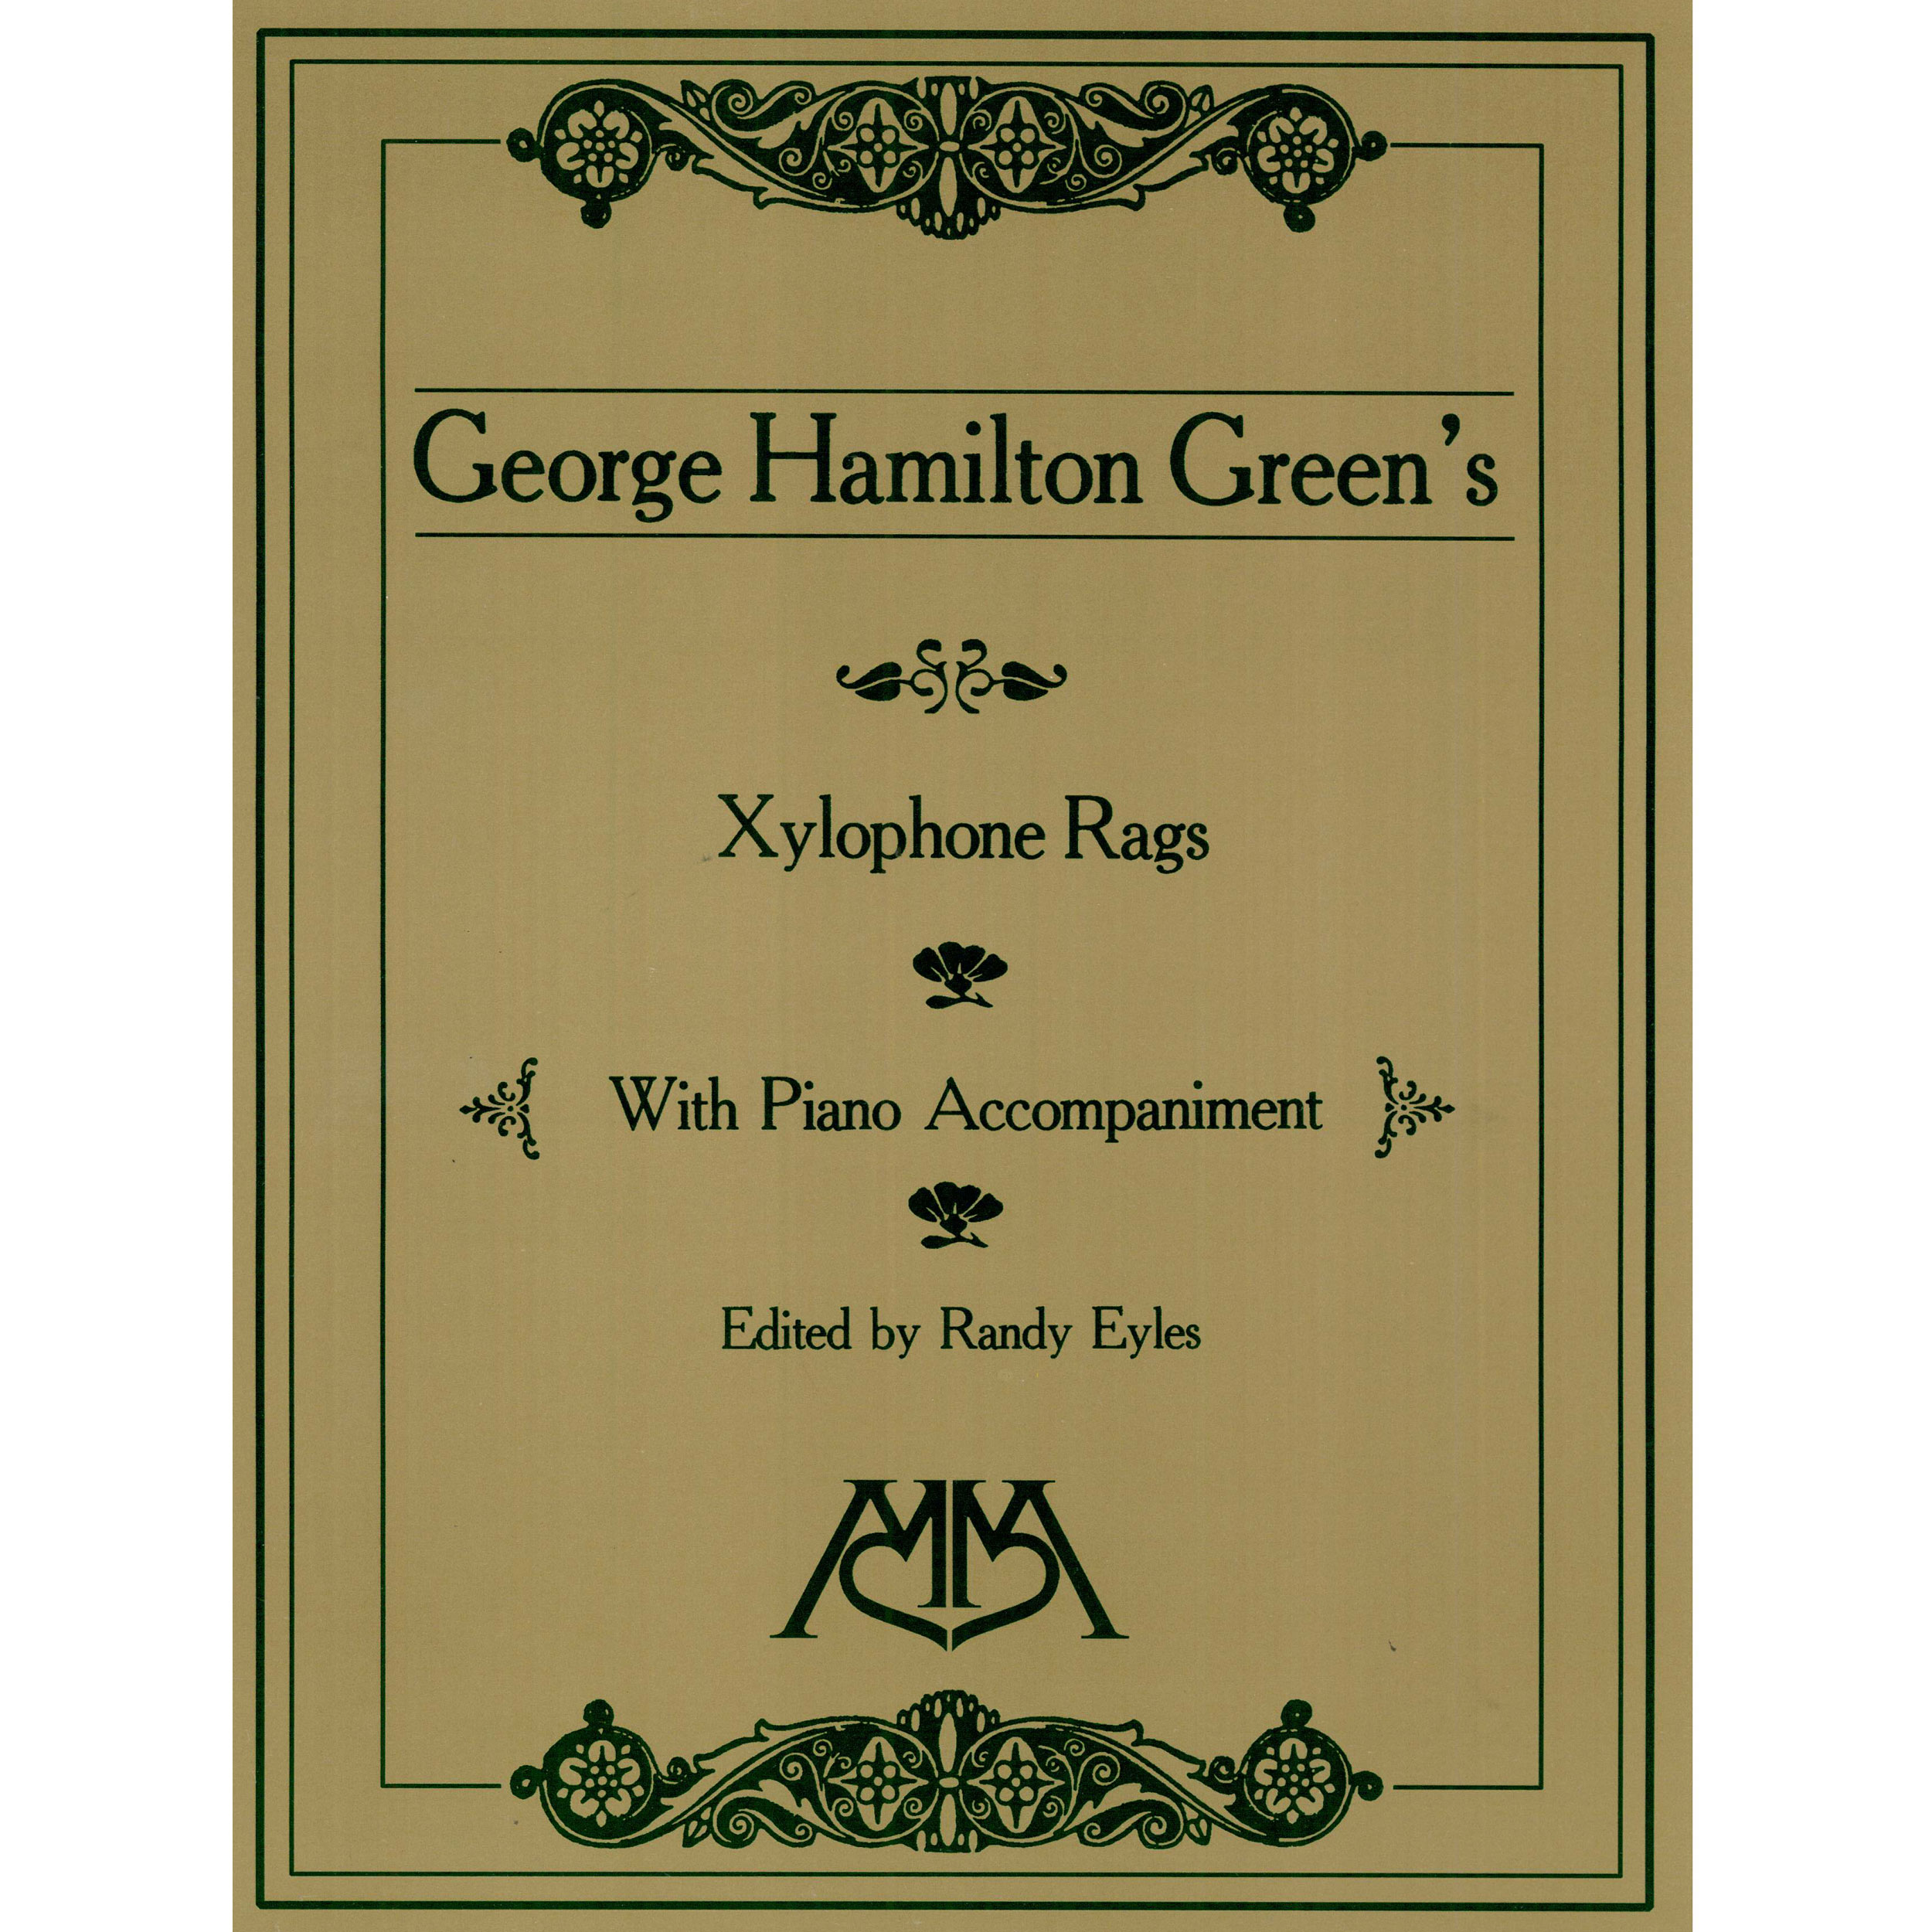 Alternate Image for Xylophone Rags of George Hamilton Green ed.